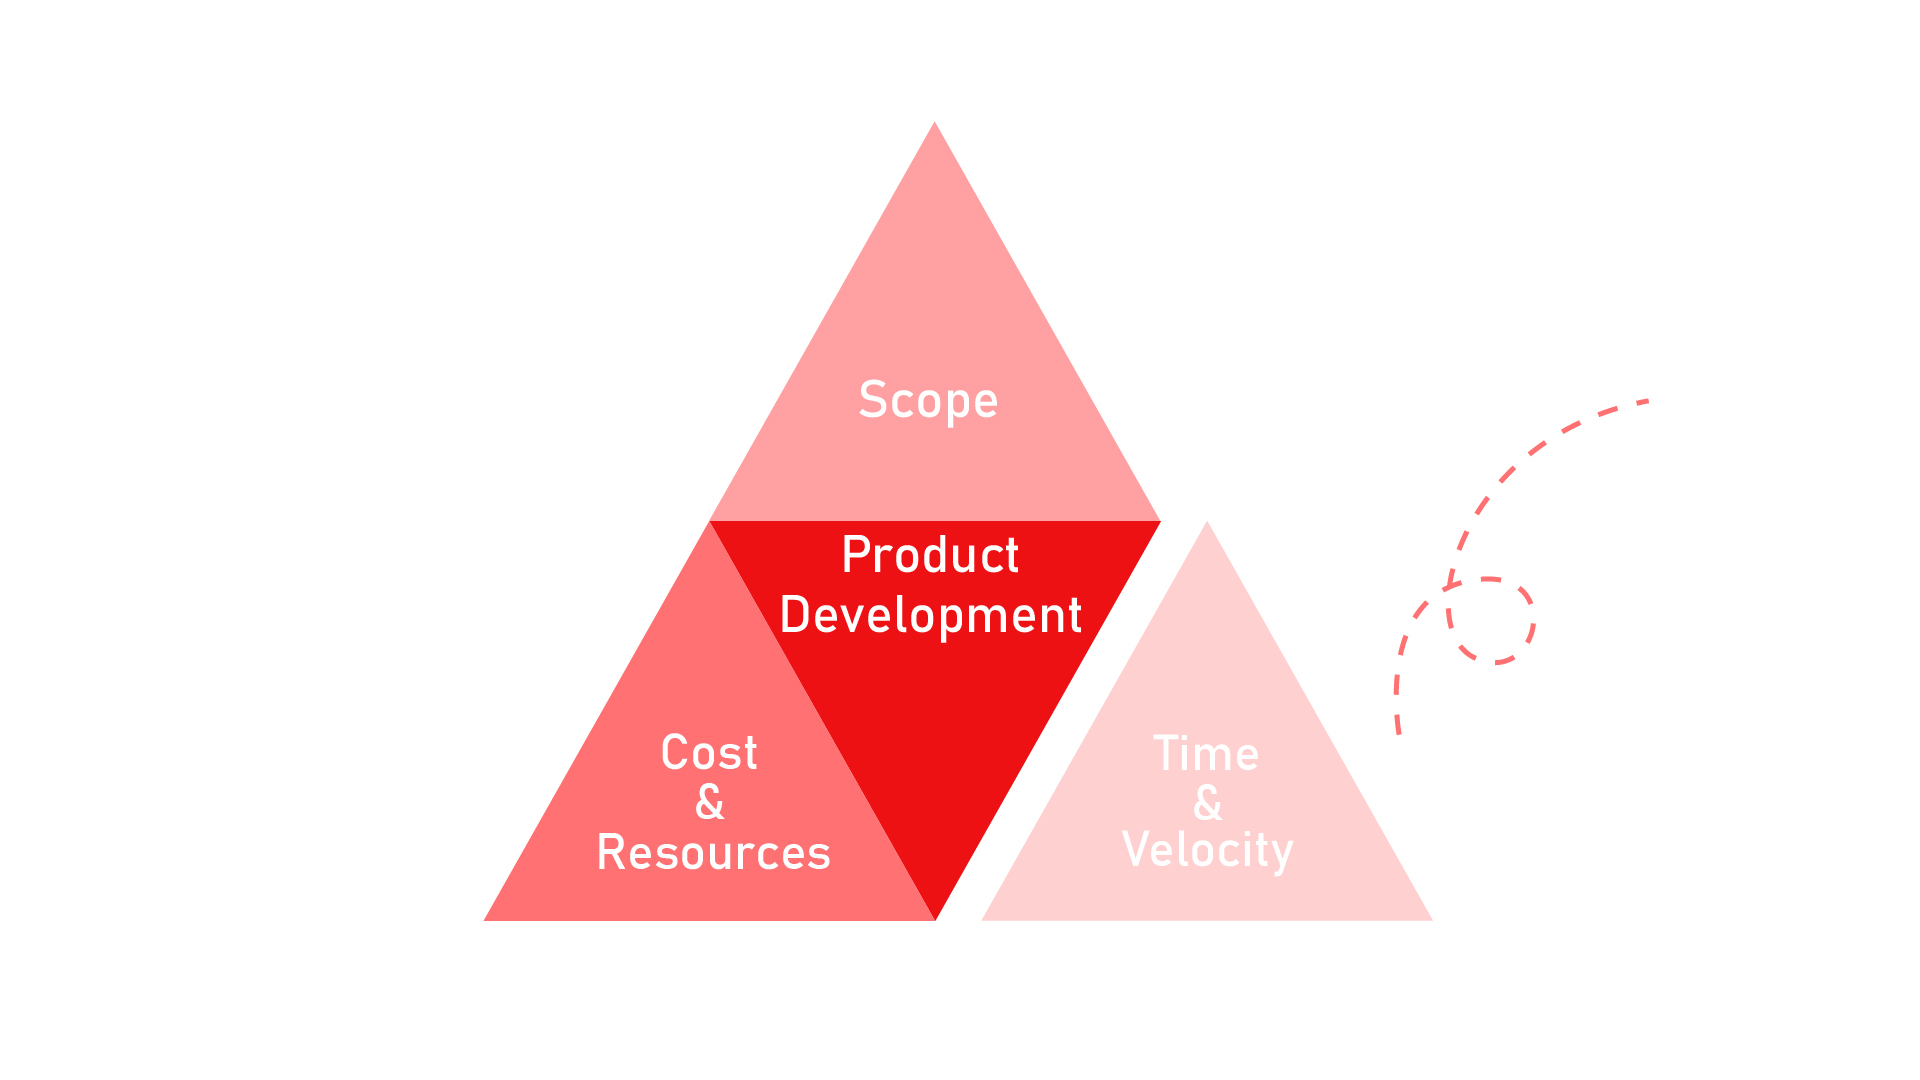 The product management triangle - Time and velocity